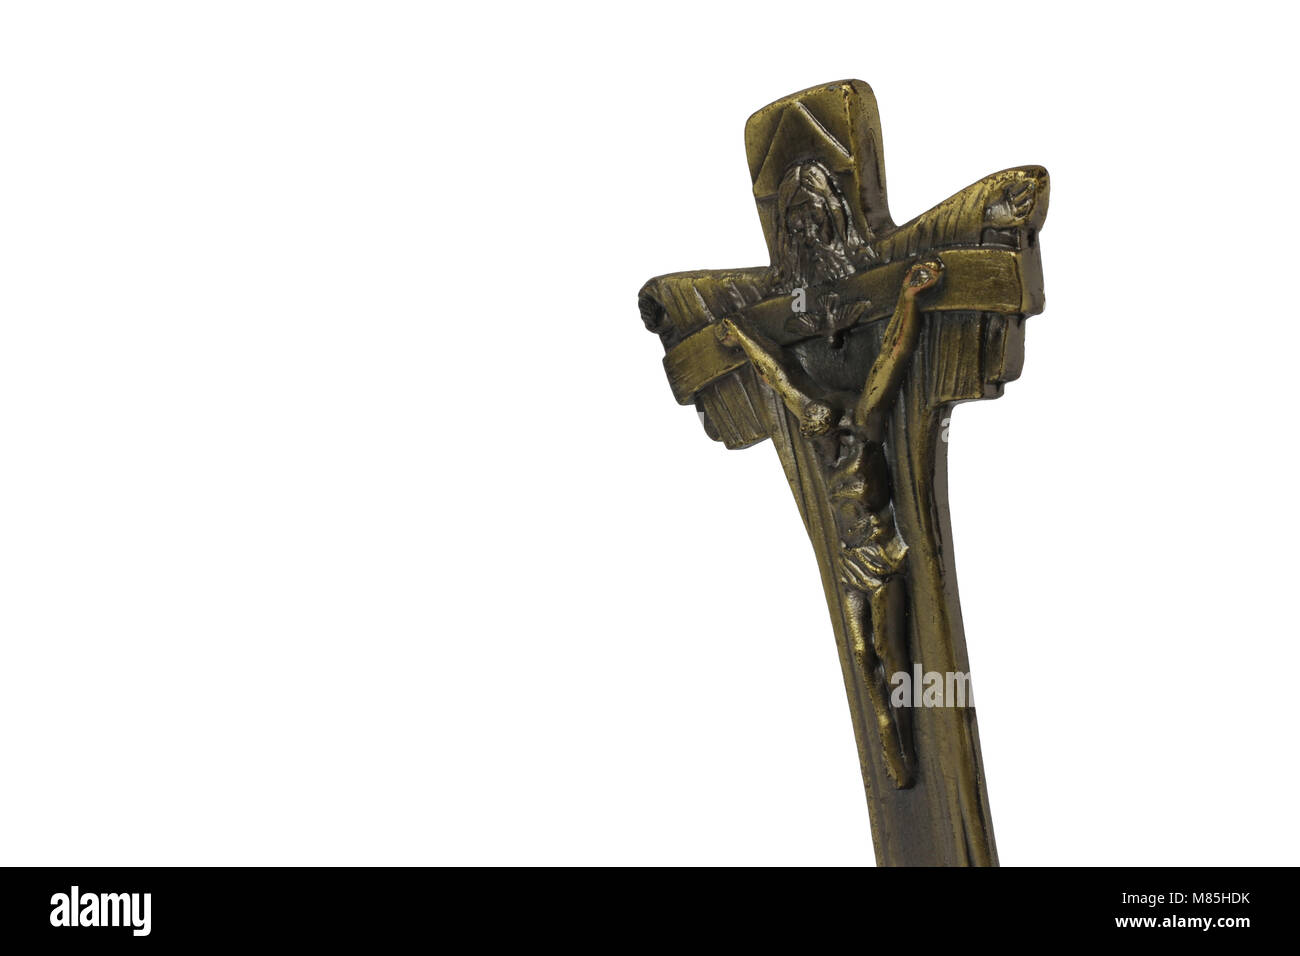 Cross brass with statue of Jesus, empty space on the left, close up view - Stock Image